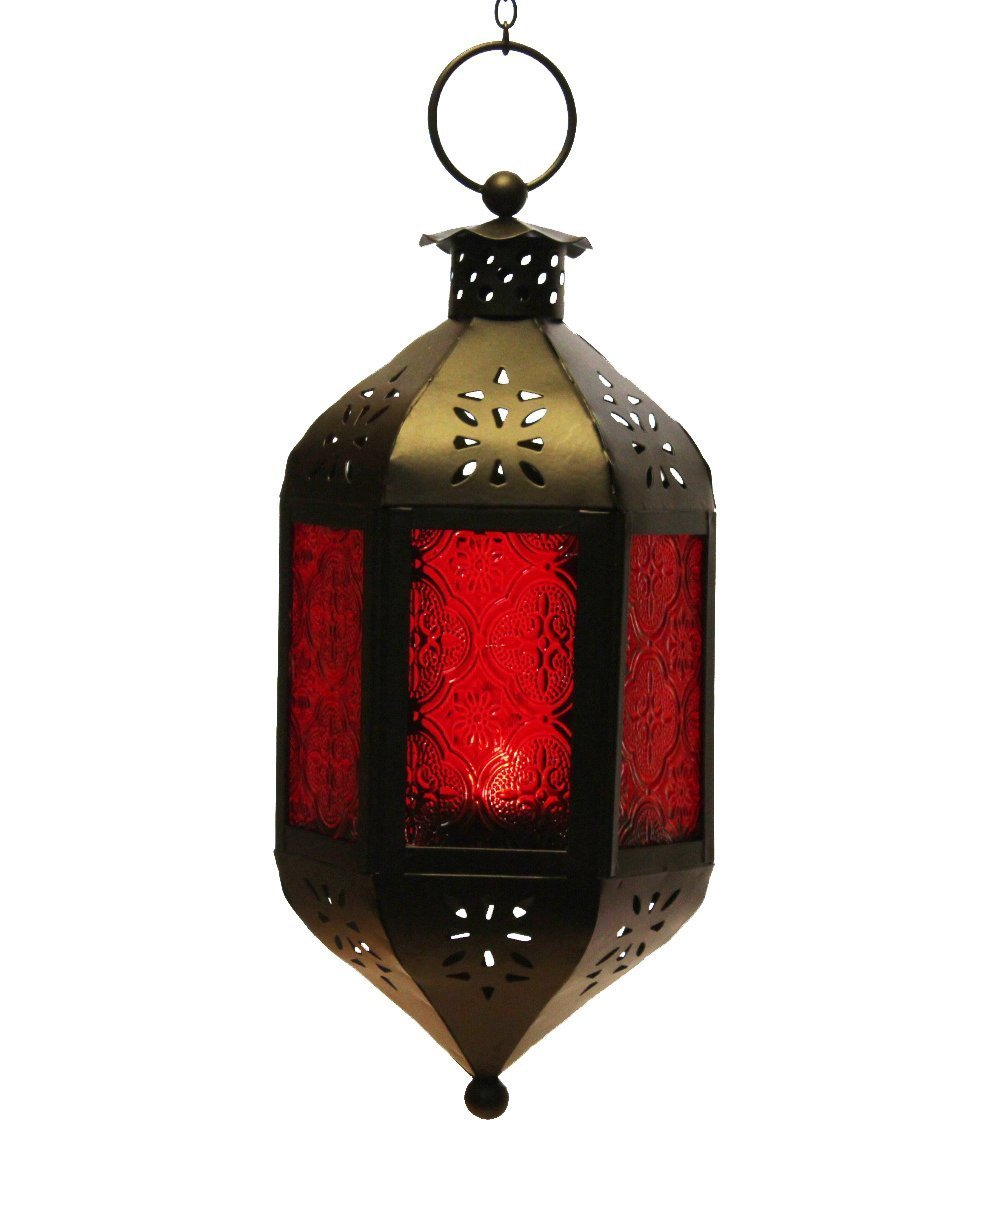 Orange Glass Hanging Moroccan Candle Lantern with Chain Vela Lanterns SYNCHKG063948